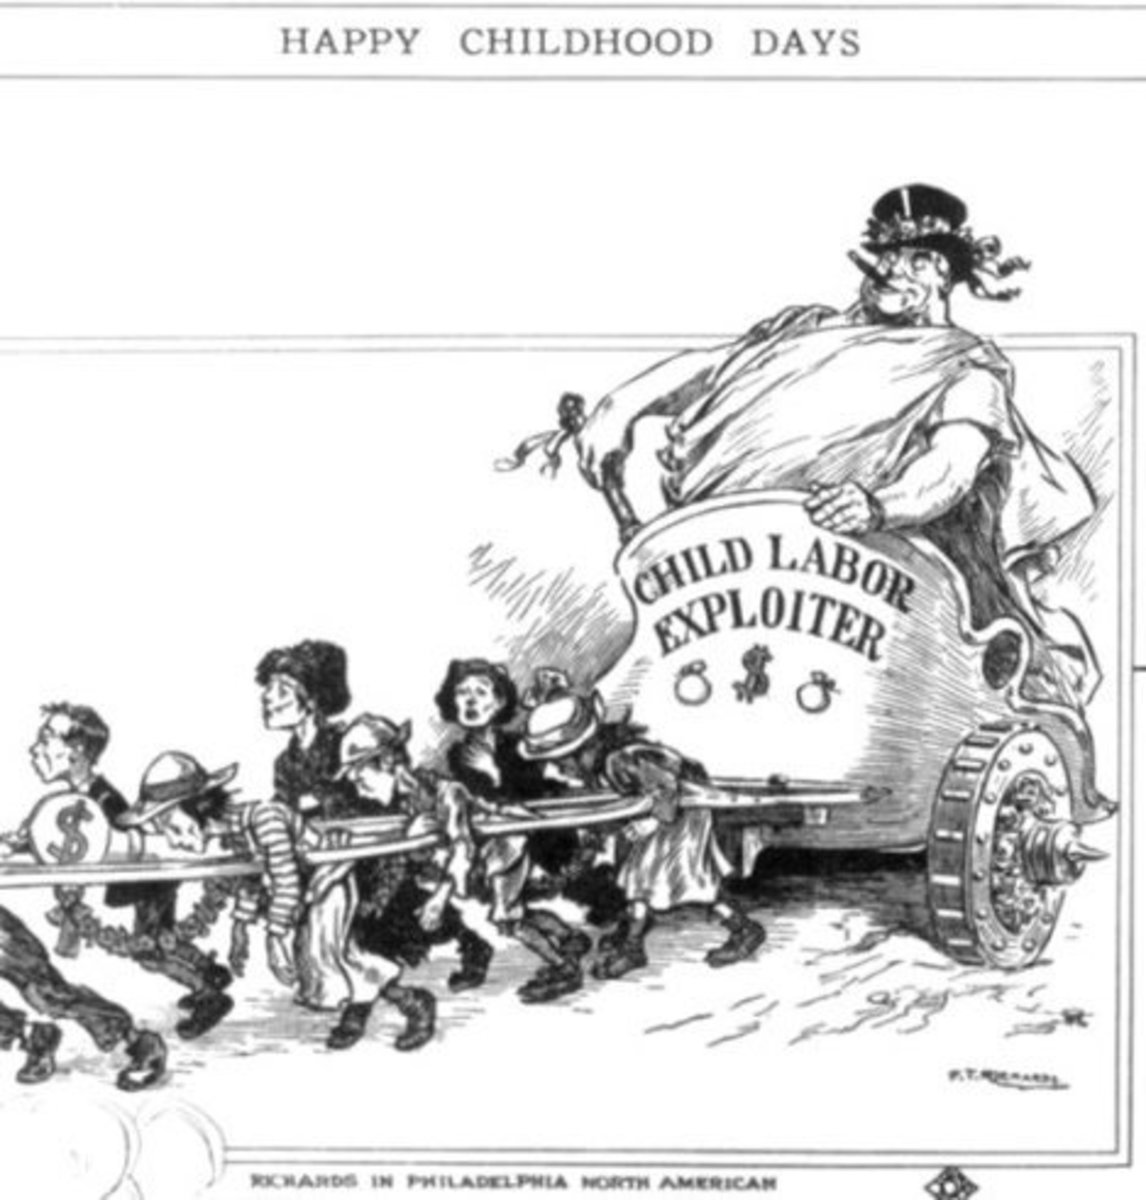 This cartoon by Frederick T. Richards appeared in the Philadelphia North American in 1913.